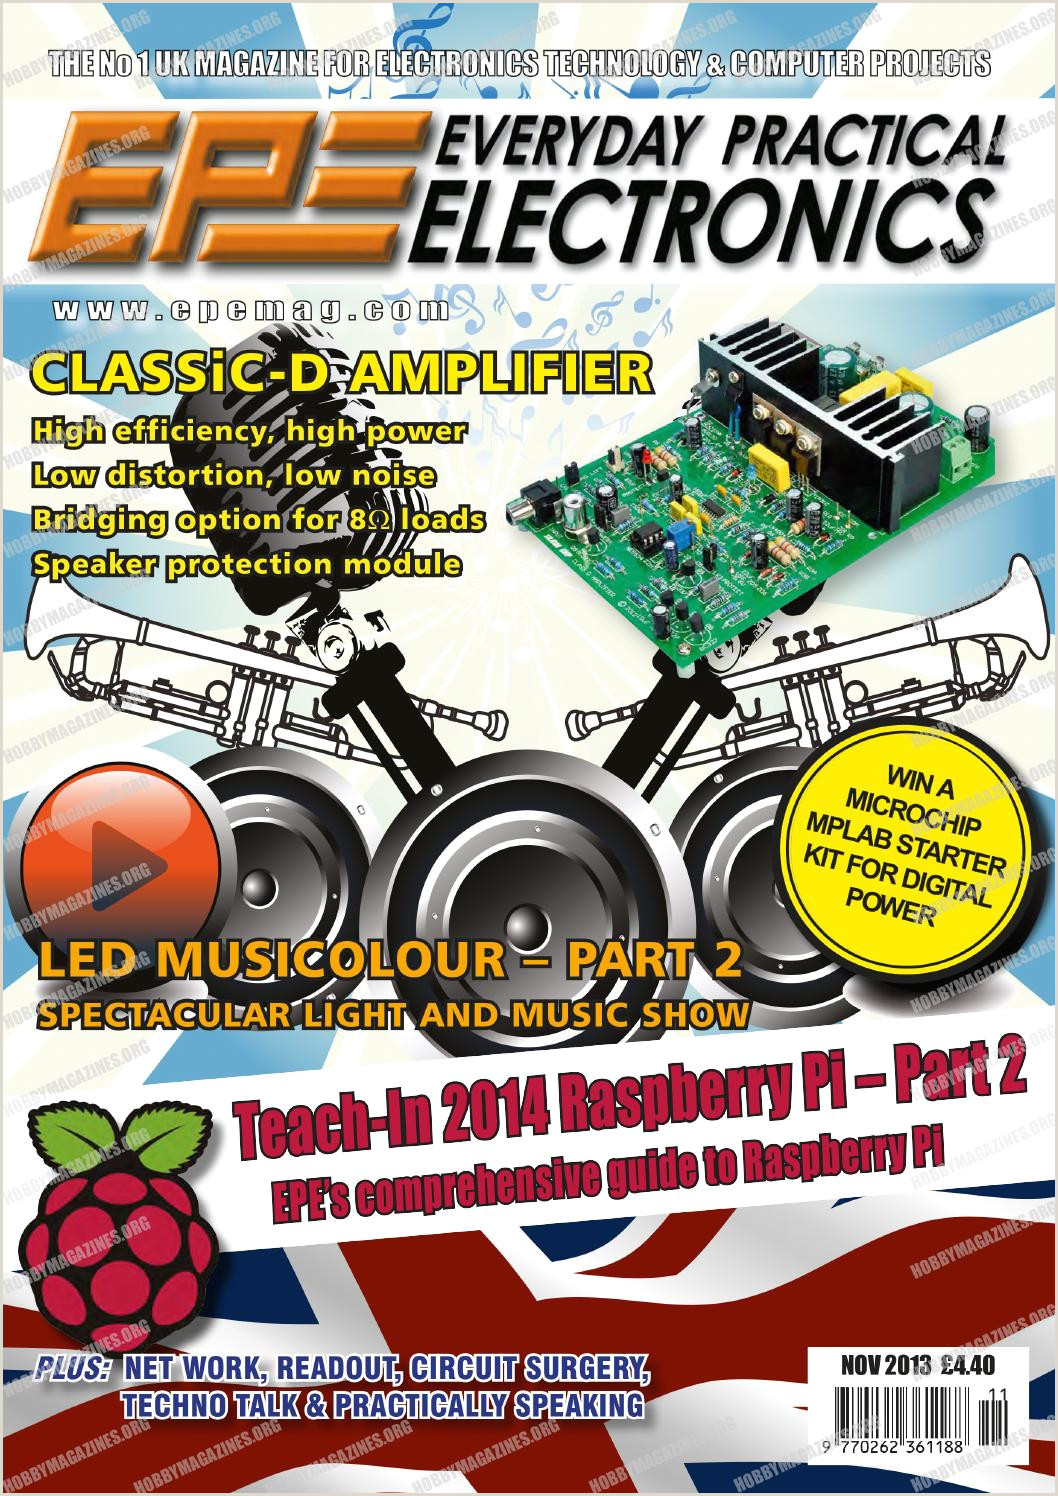 Wirecutter Best Business Cards Everyday Practical Electronics 2013 11 By Yurgen Issuu